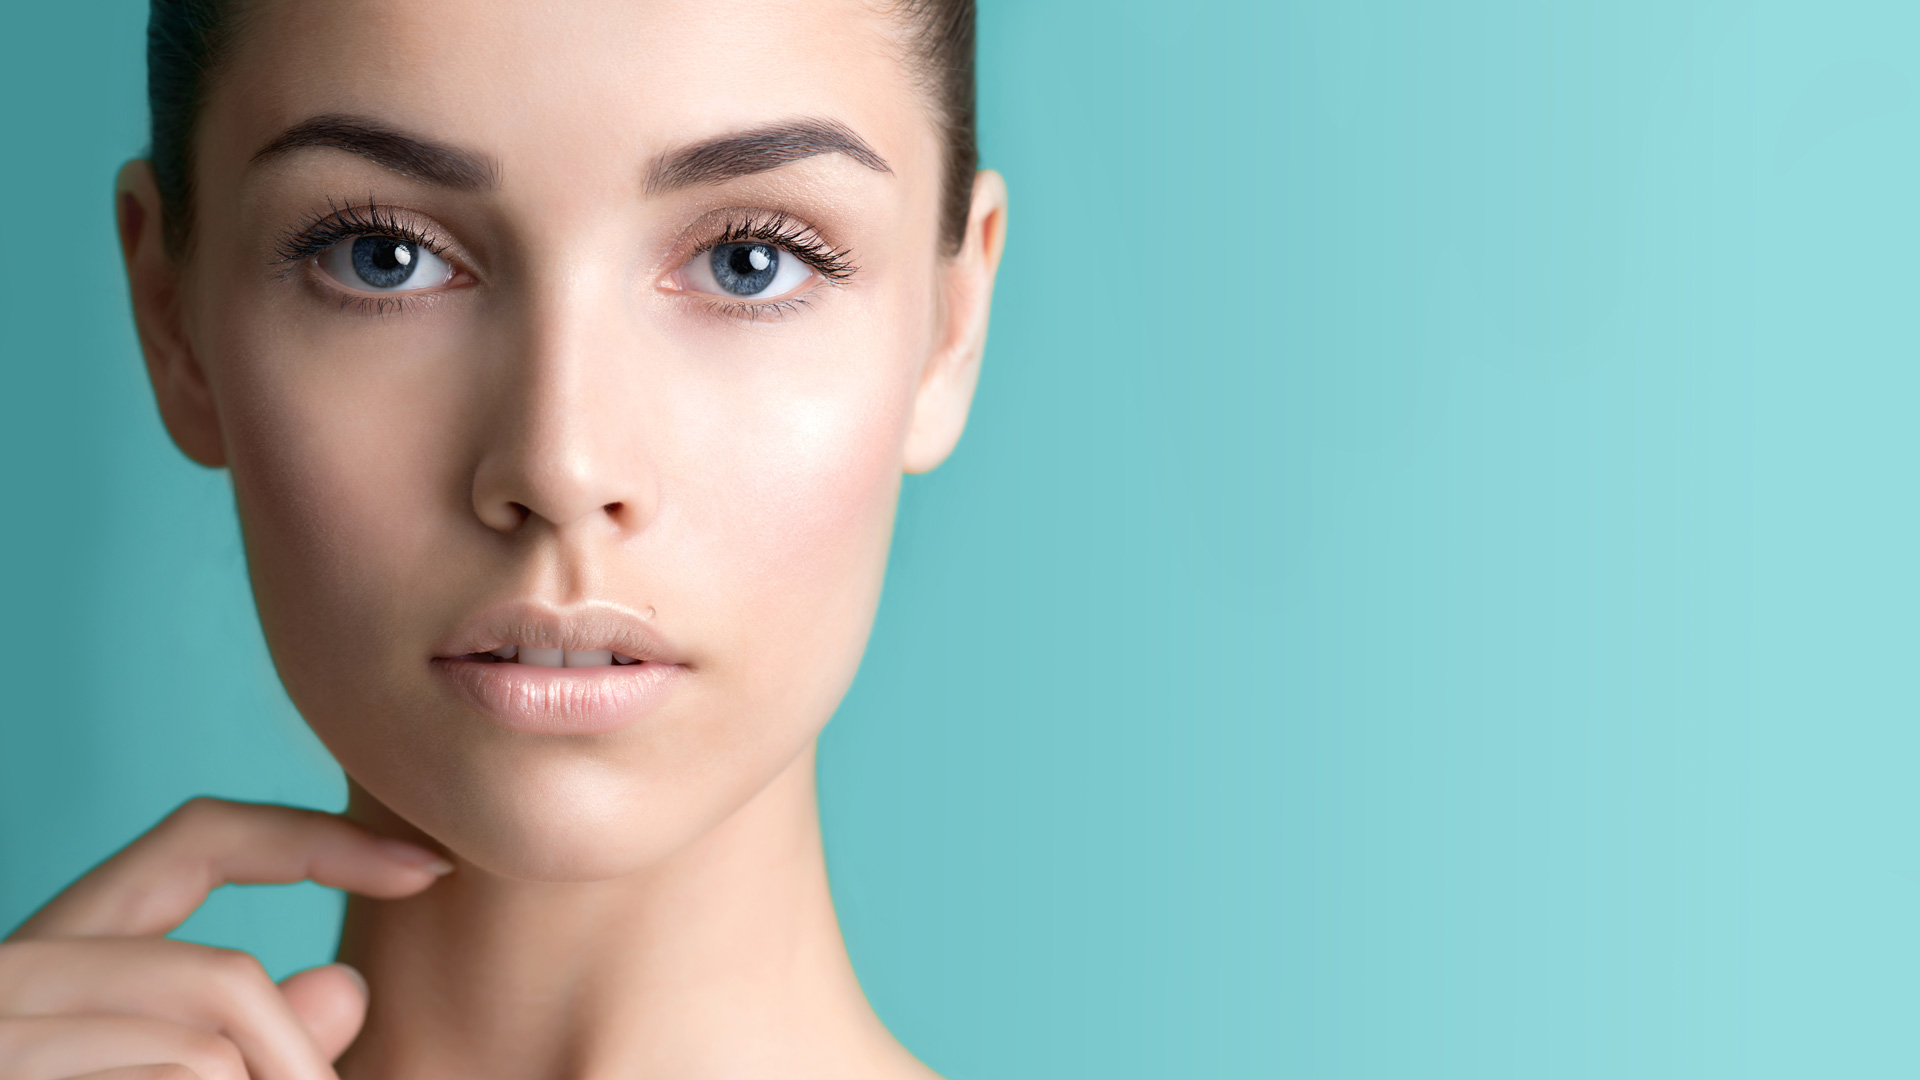 All about skin rejuvenation procedures